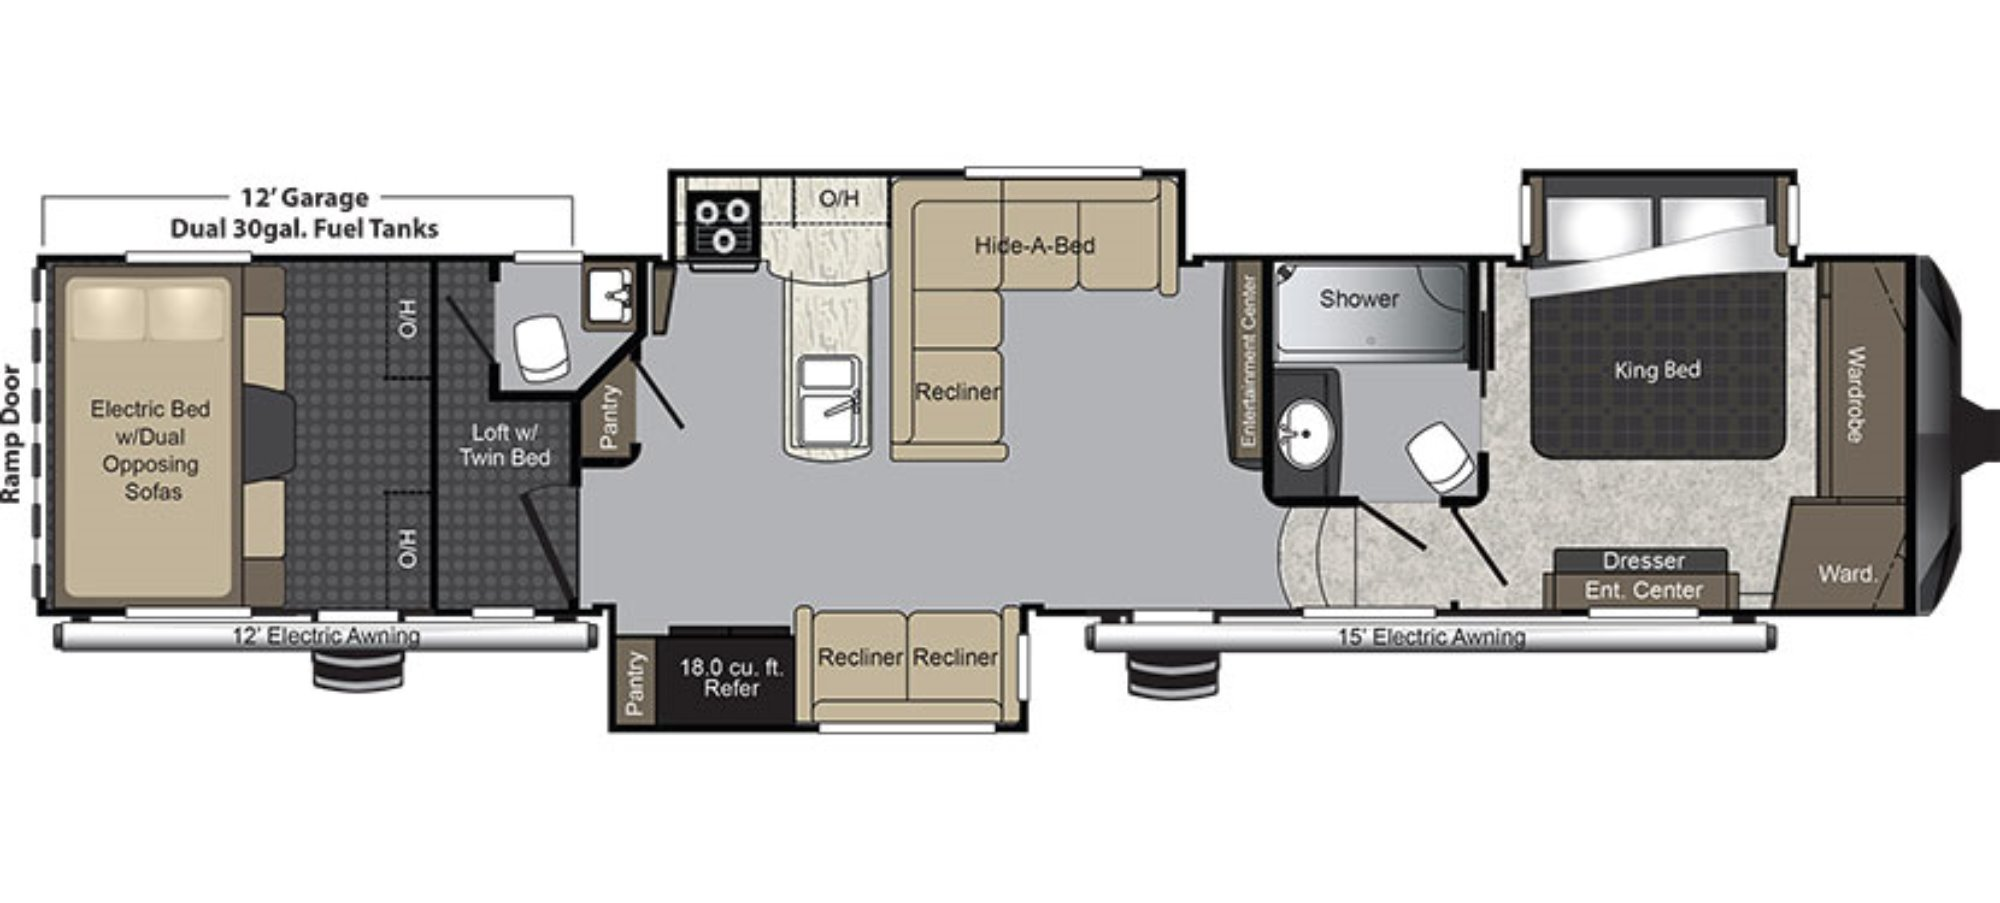 New 2016 keystone raptor 425ts fifth wheel toy hauler for for Floor plans 5th wheel campers